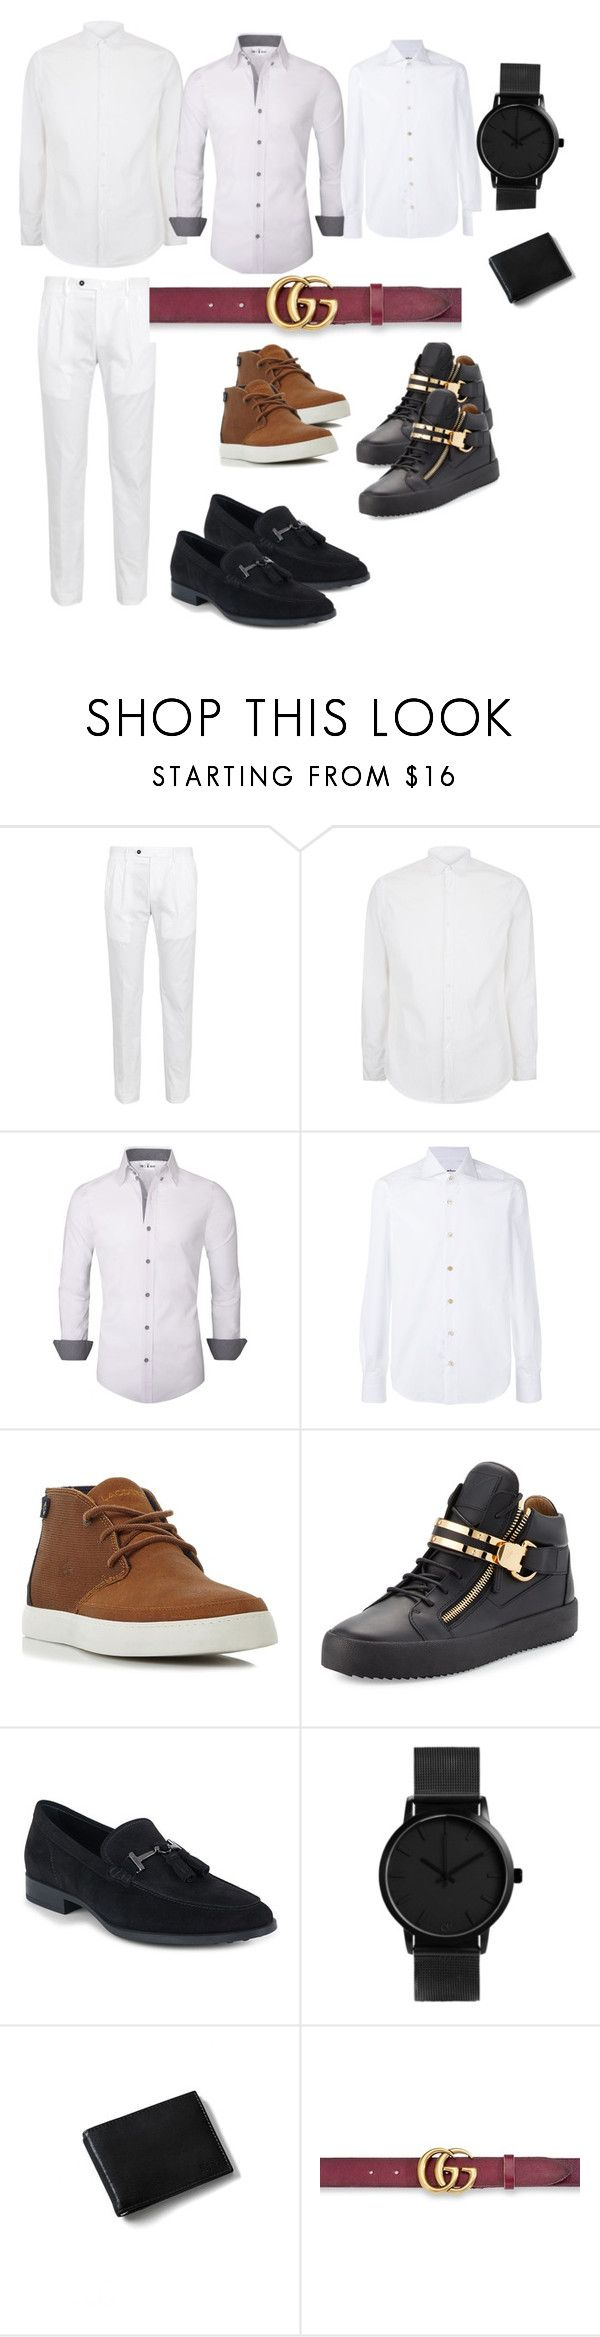 """""""Qawiyy Graduation outfit 🎉🎊🎉"""" by tyshellk ❤ liked on Polyvore featuring Drumohr, Hardy Amies, Kiton, Lacoste, Giuseppe Zanotti, Tod's, Lands' End, Gucci, men's fashion and menswear"""